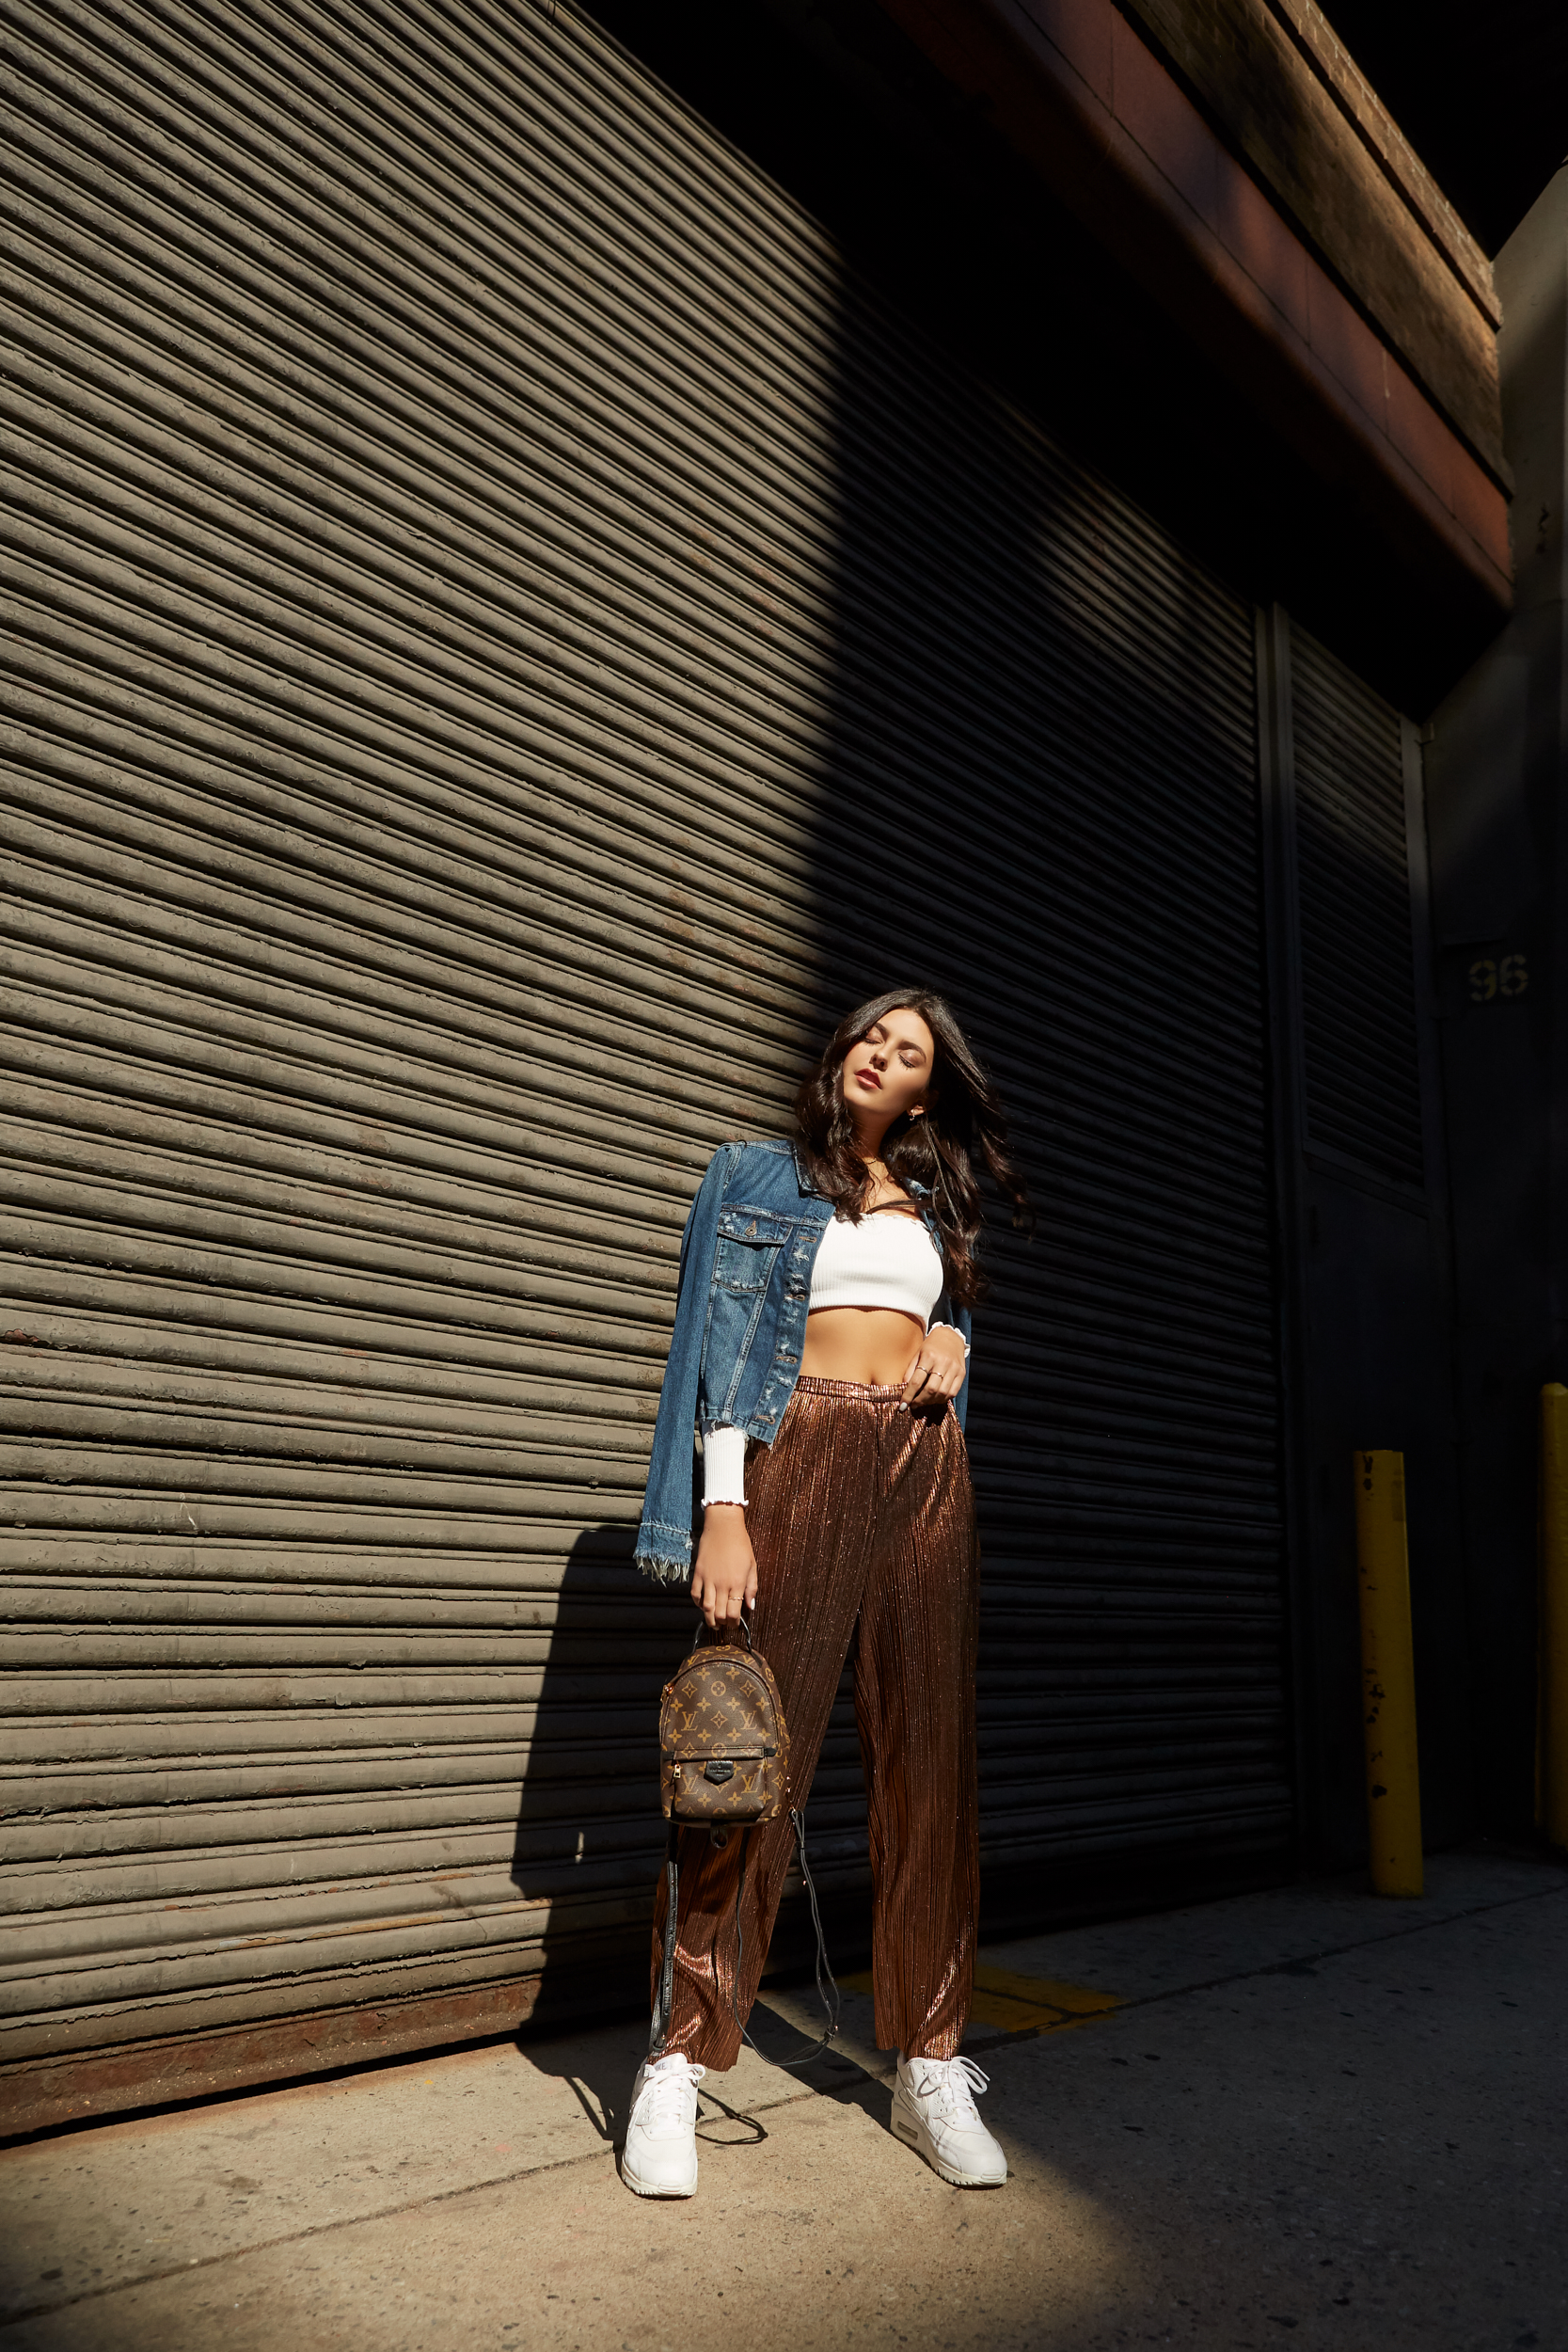 NYFW Recap #1 Julia Friedman, metallic pants, crop top, denim jacket, sneakers, nyfw street style